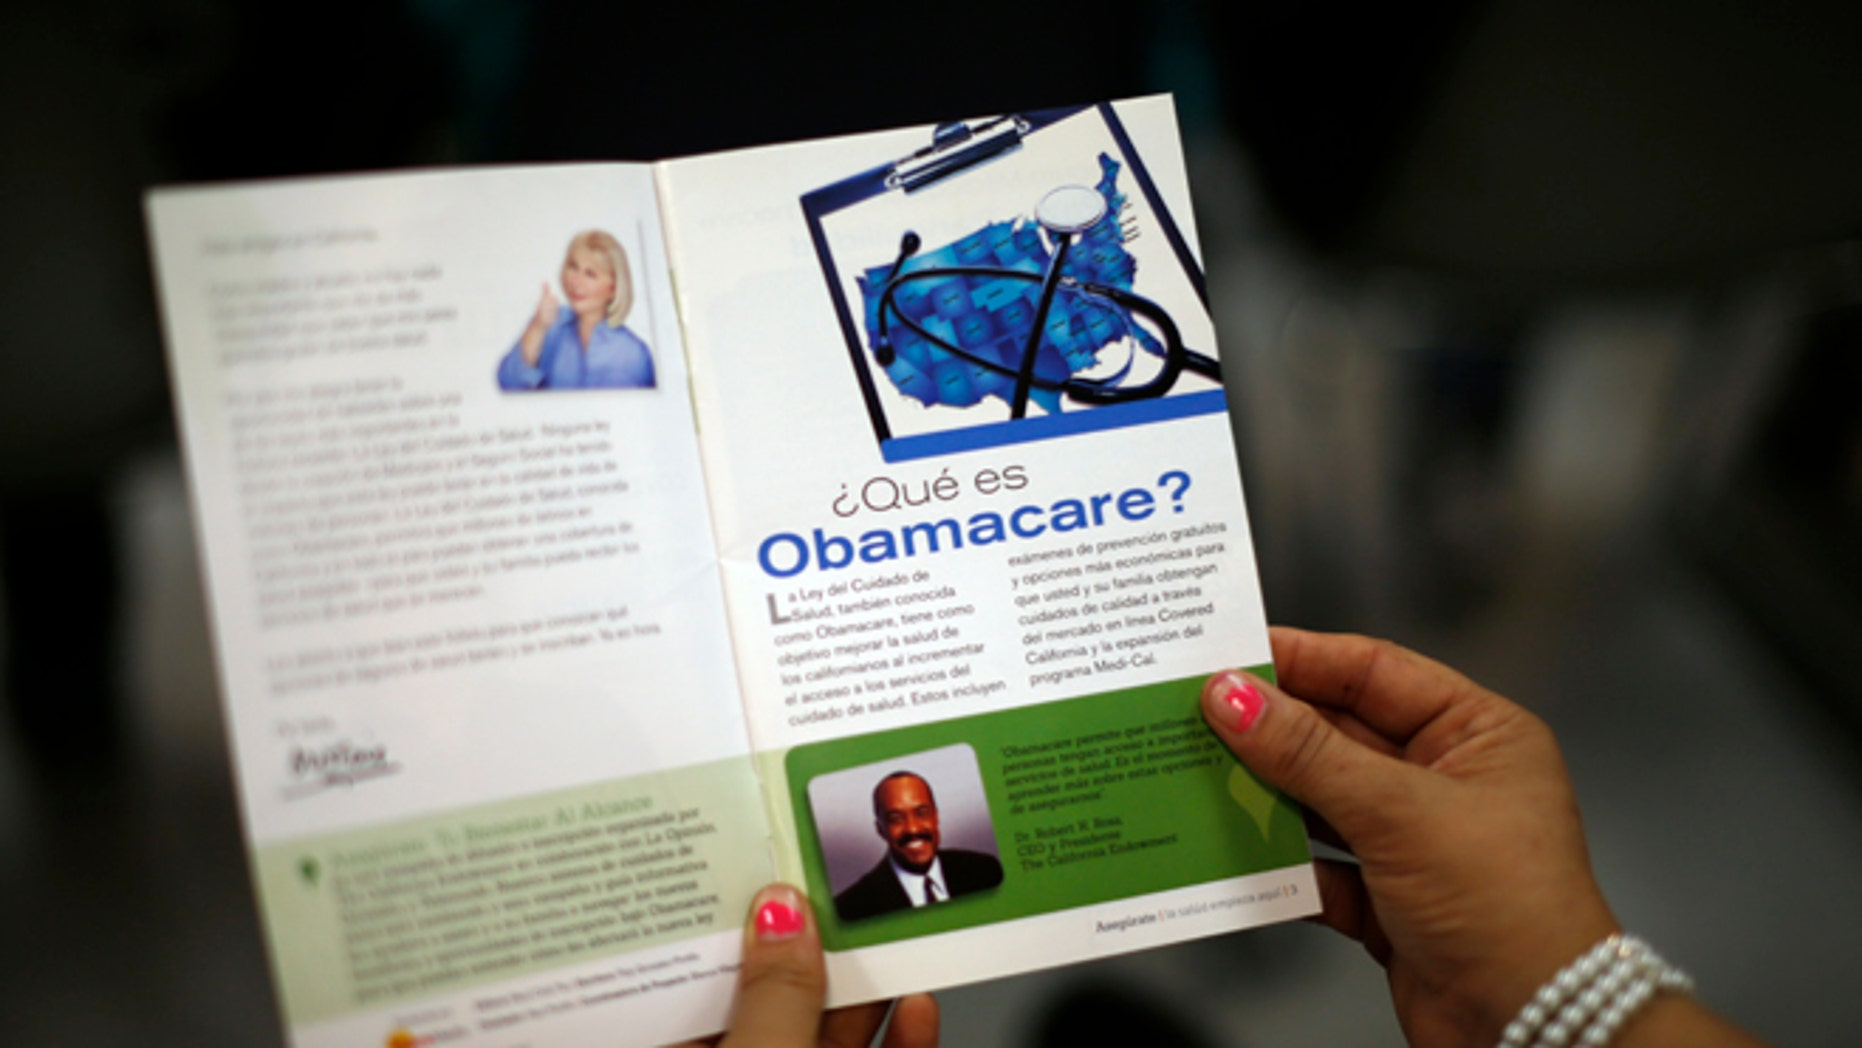 FILE: March 27, 2014: A woman reads a pamphlet in Spanish at a health insurance enrollment event in Cudahy, Calif.